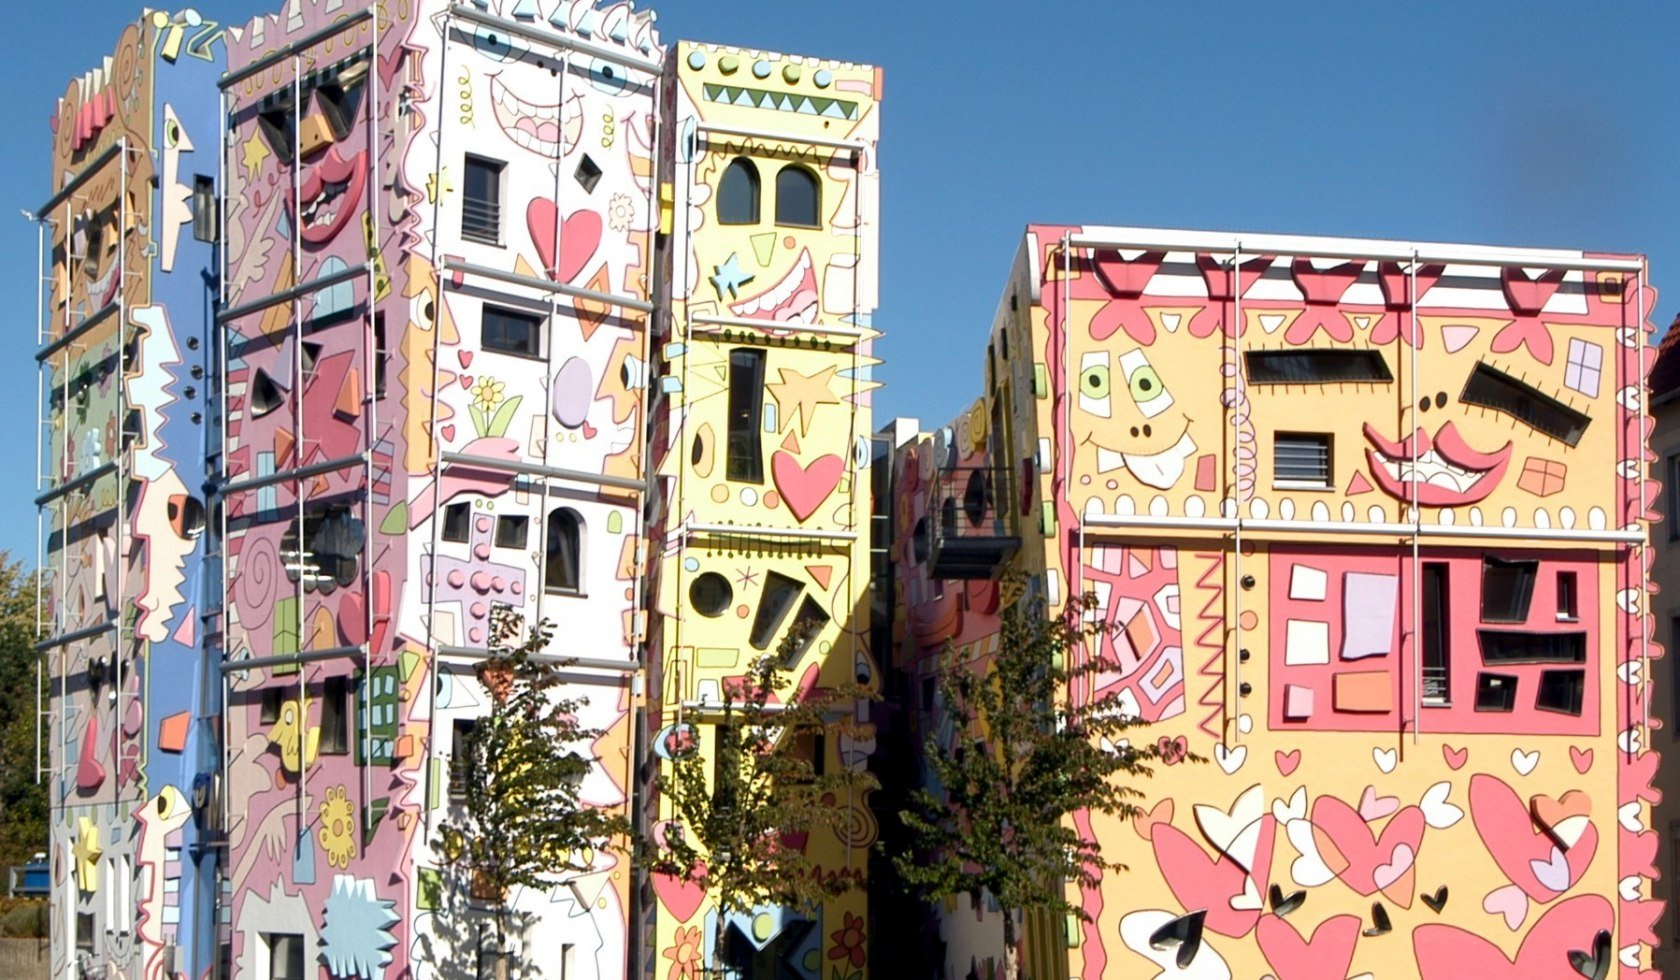 The colorful and playful Happy Rizzi houses in Braunschweig